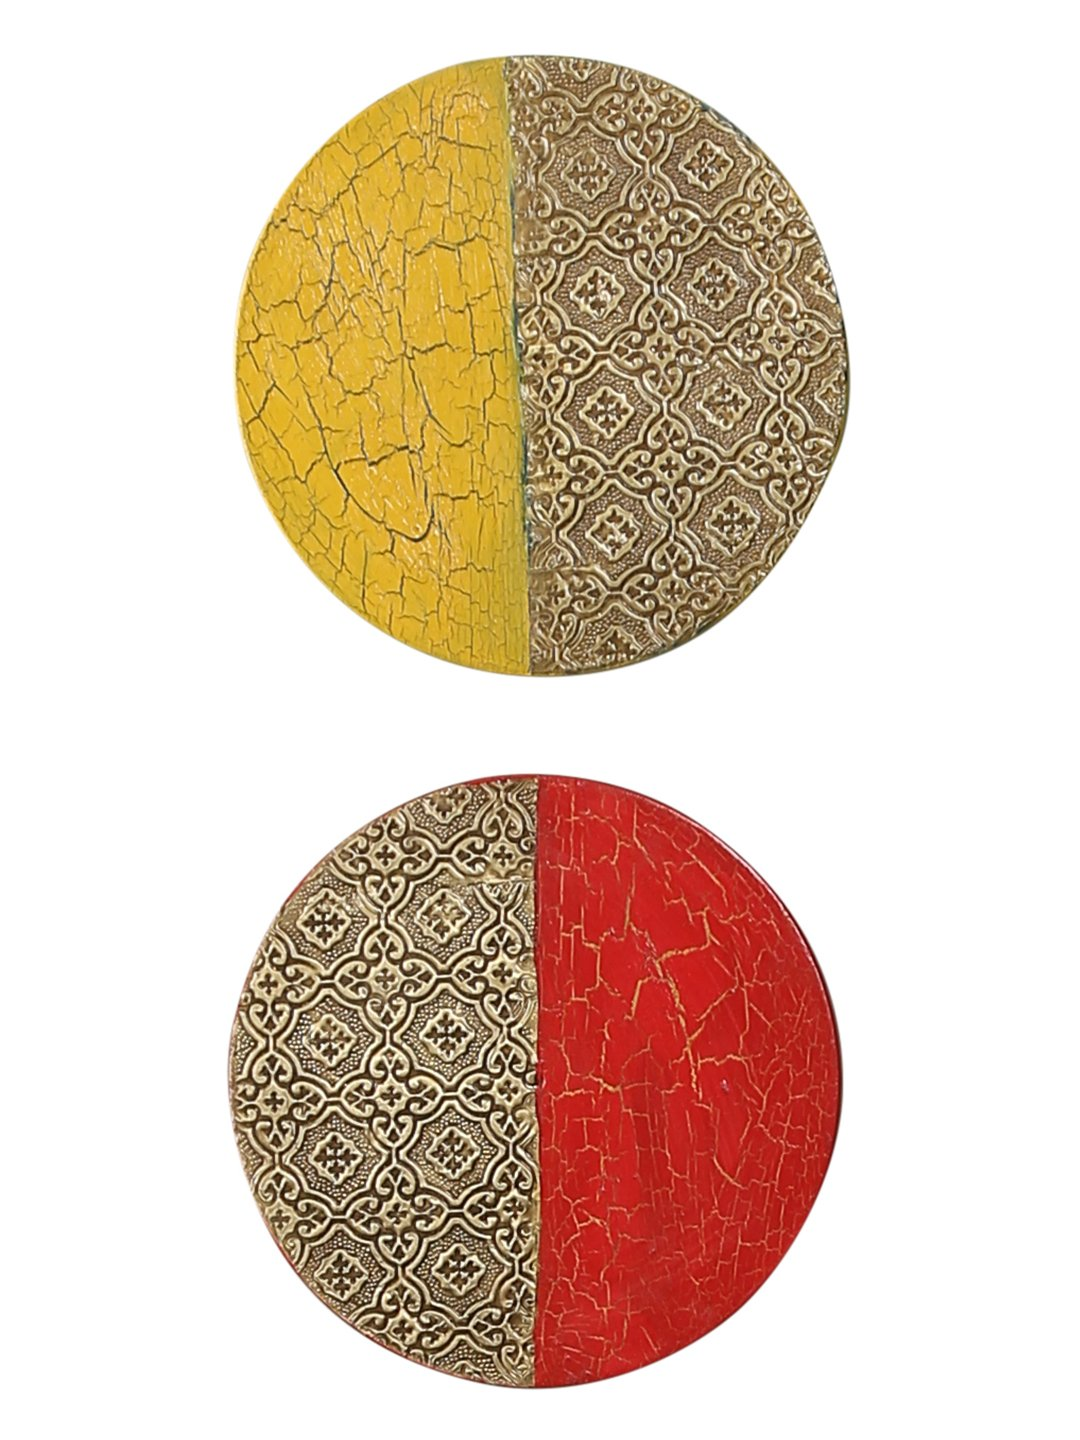 Hand-painted Limited Edition Metal Wall Art (Set of 2)